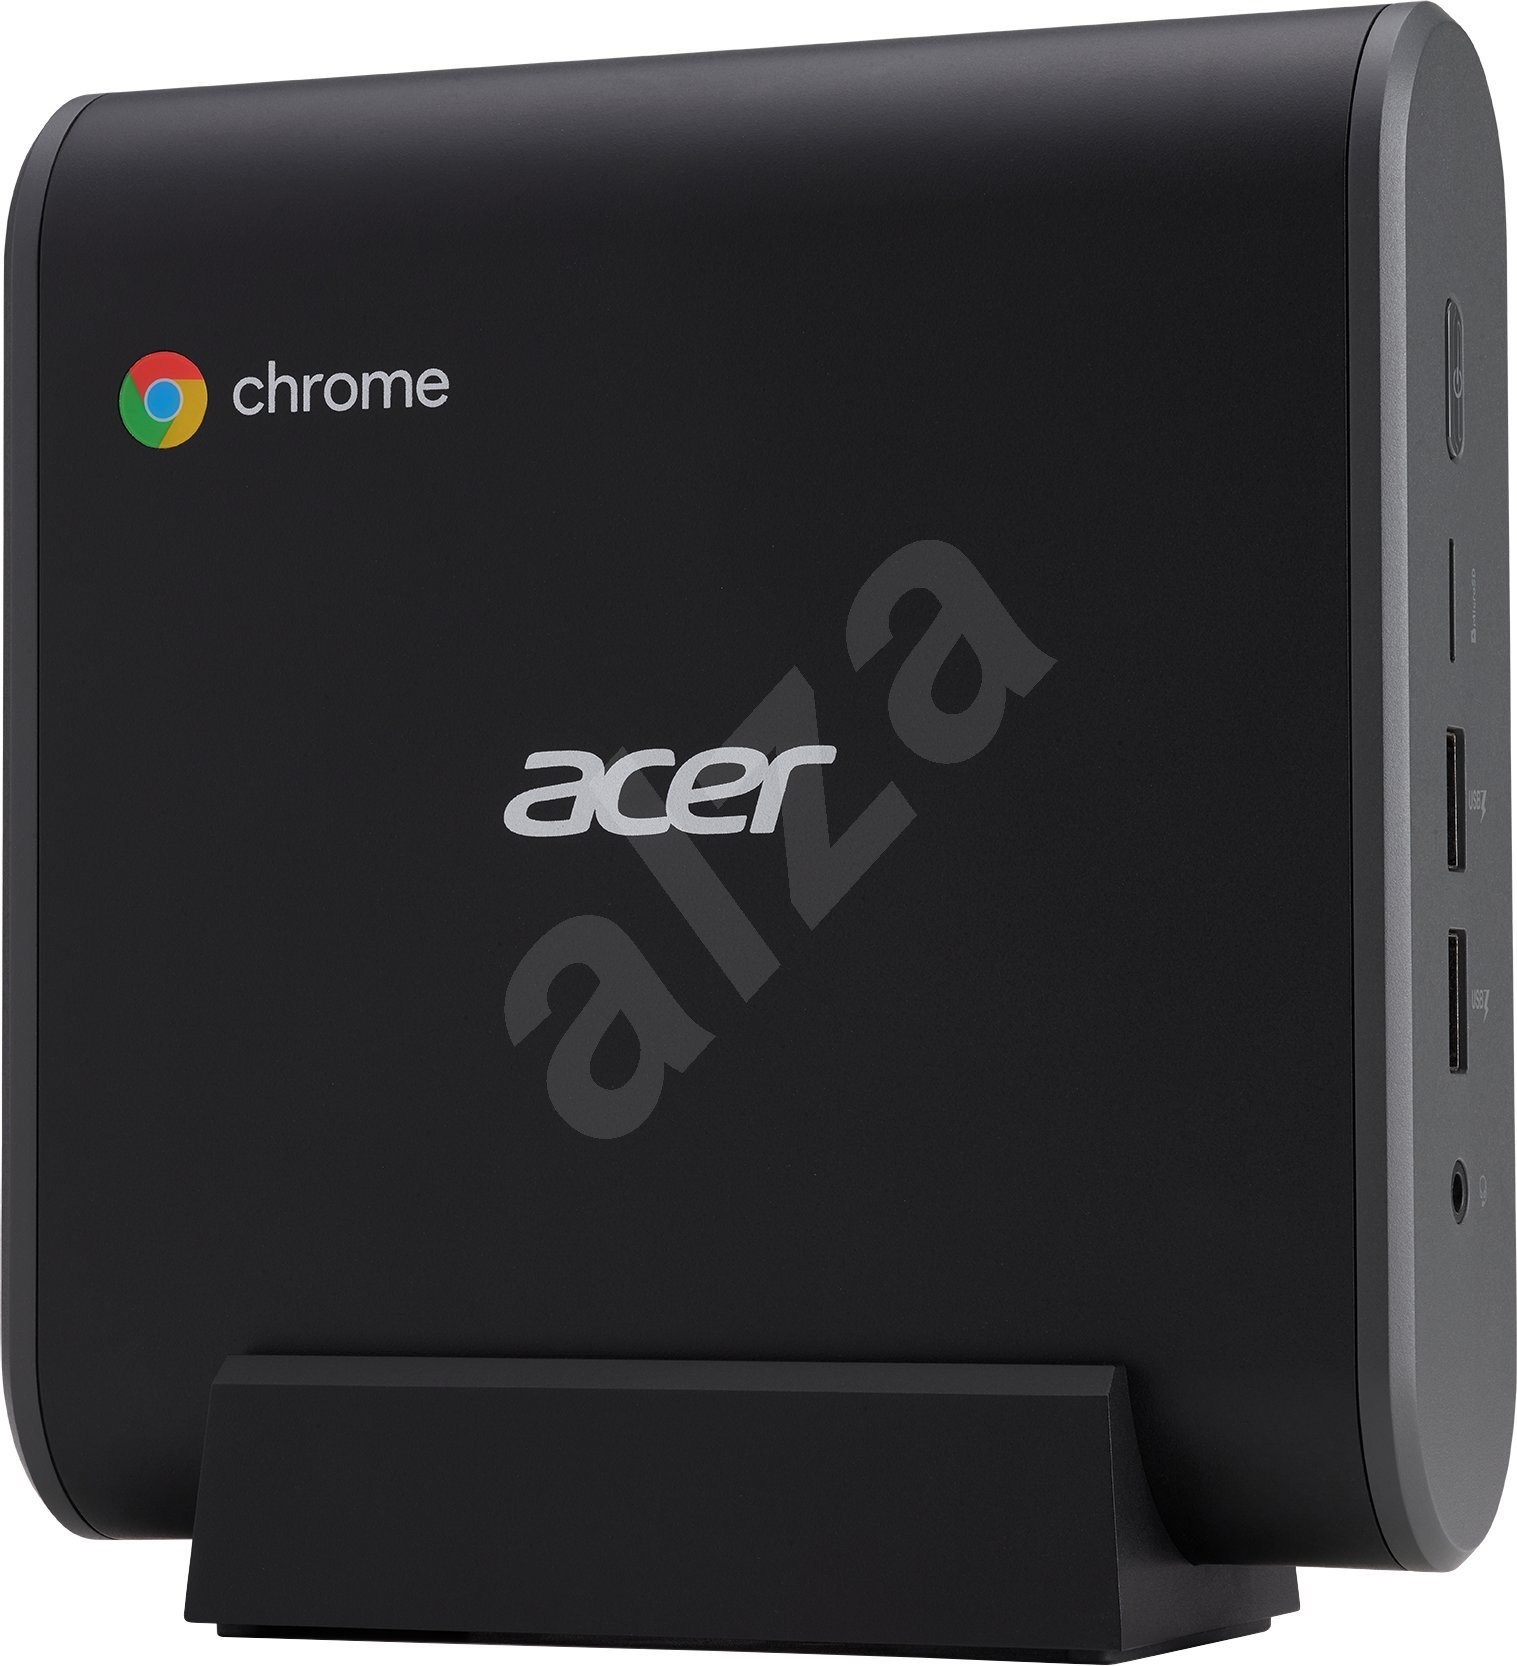 Acer Chromebox CXI3 - Mini PC